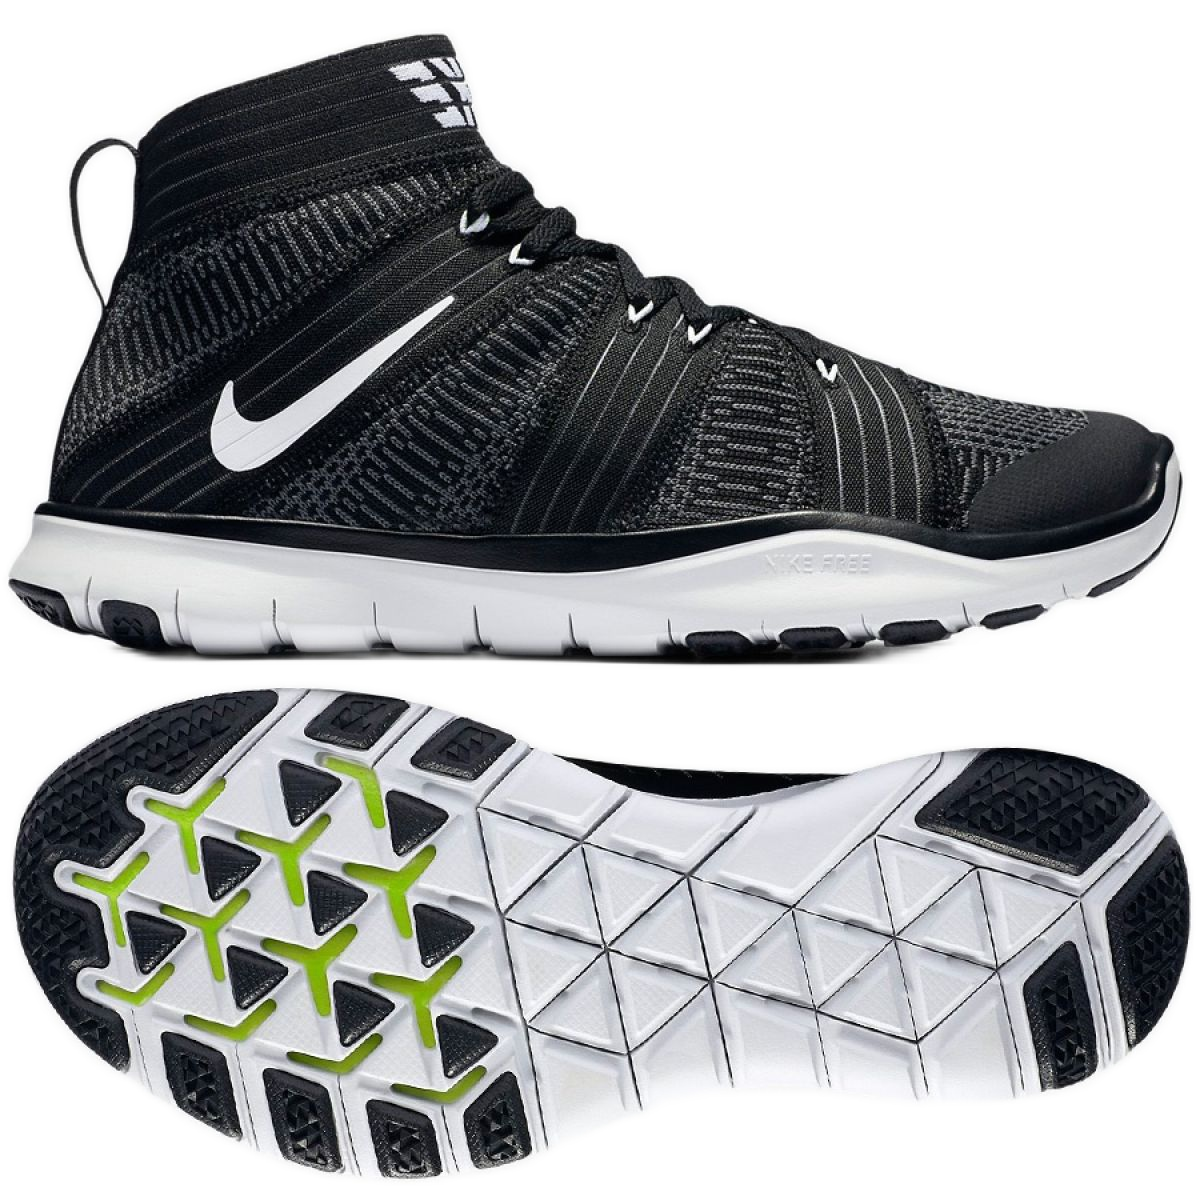 finest selection 8c54a eb216 Black Training shoes Nike Free Train Virtue M 898052-001